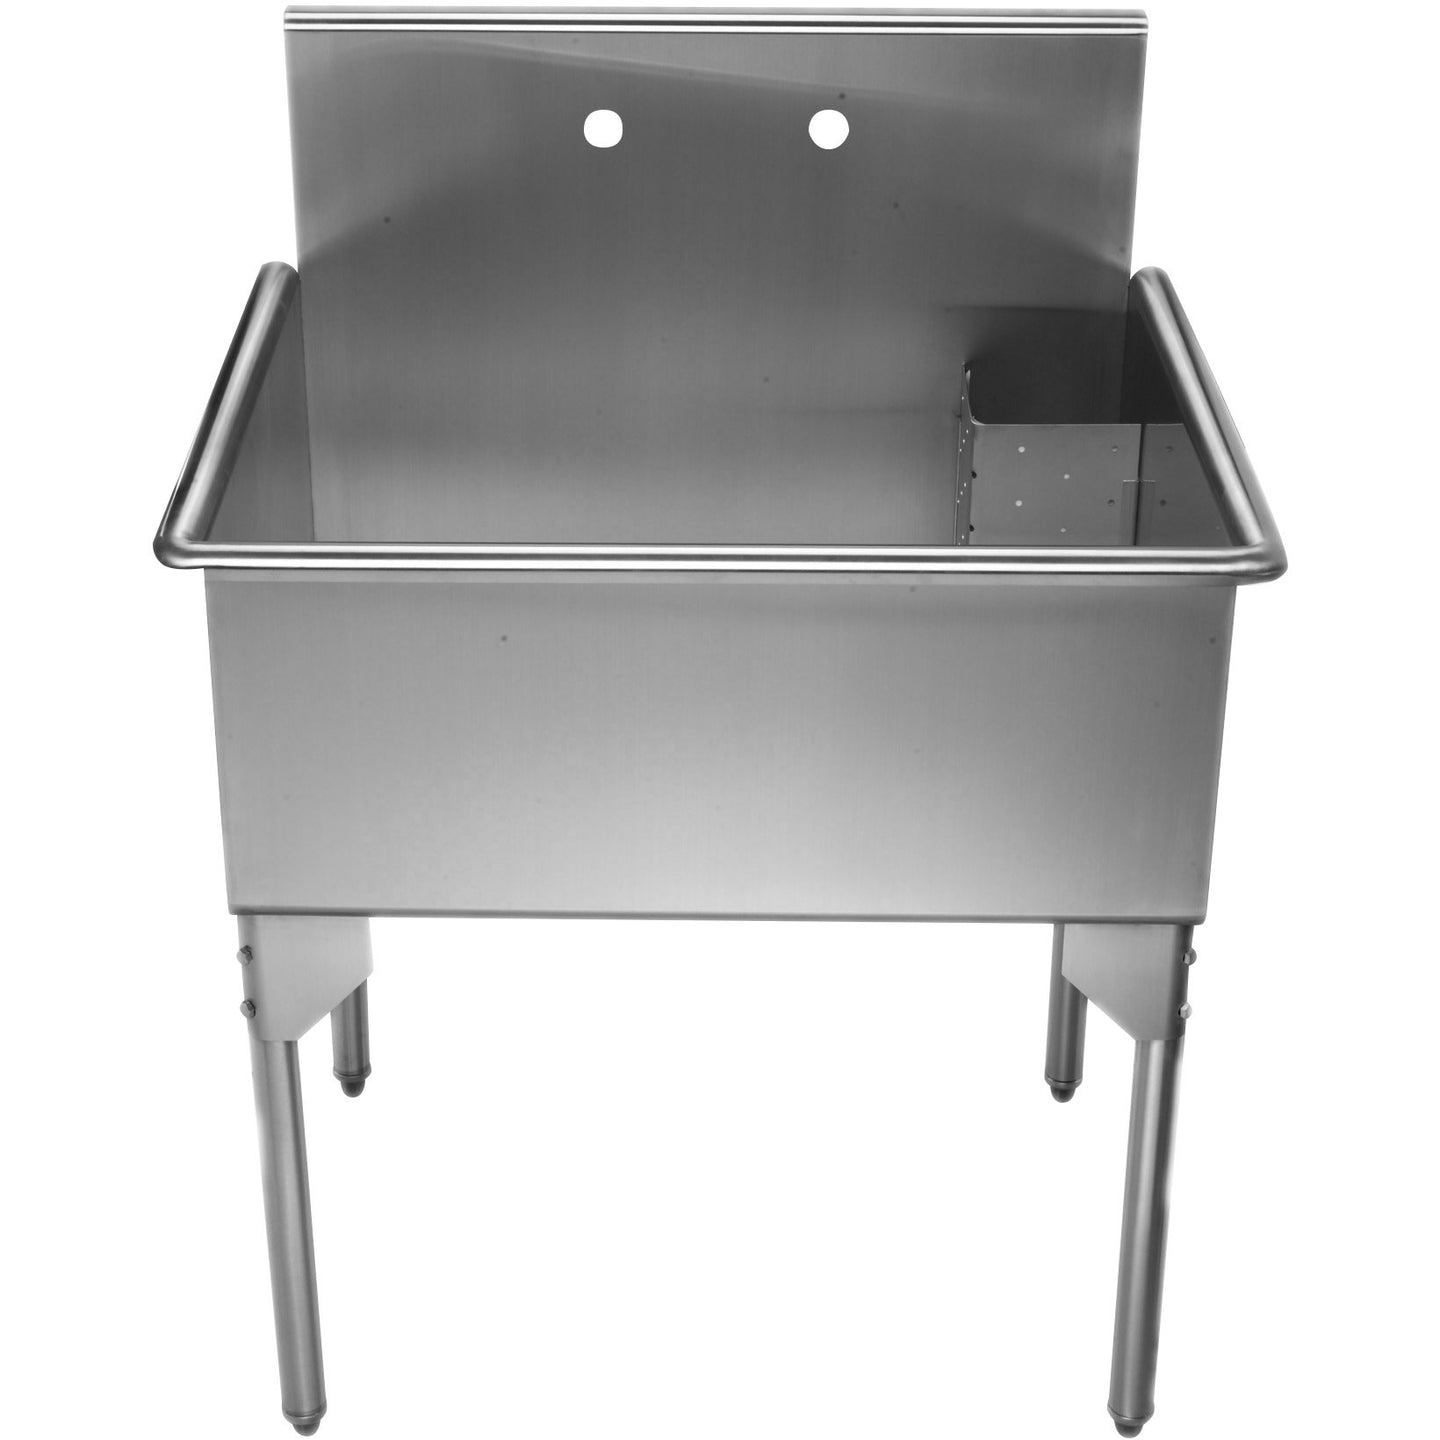 Whitehaus Pearlhaus Brushed Stainless Steel Single Bowl Commerical Freestanding Utility Sink